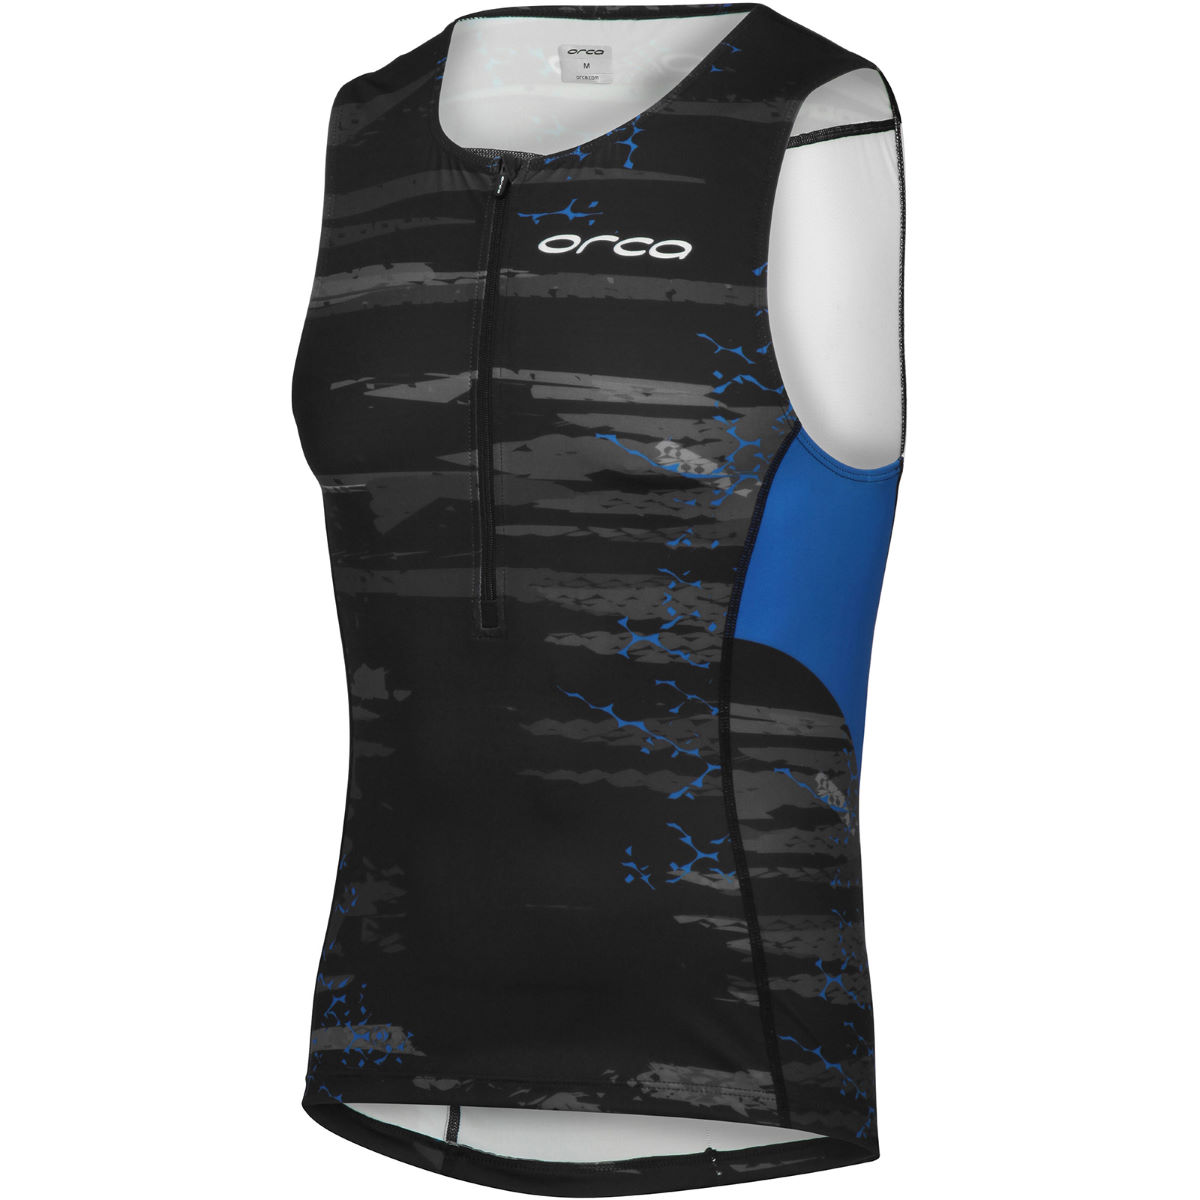 Maillot de triathlon Orca Tex-Abs (exclusivité Wiggle) - Small